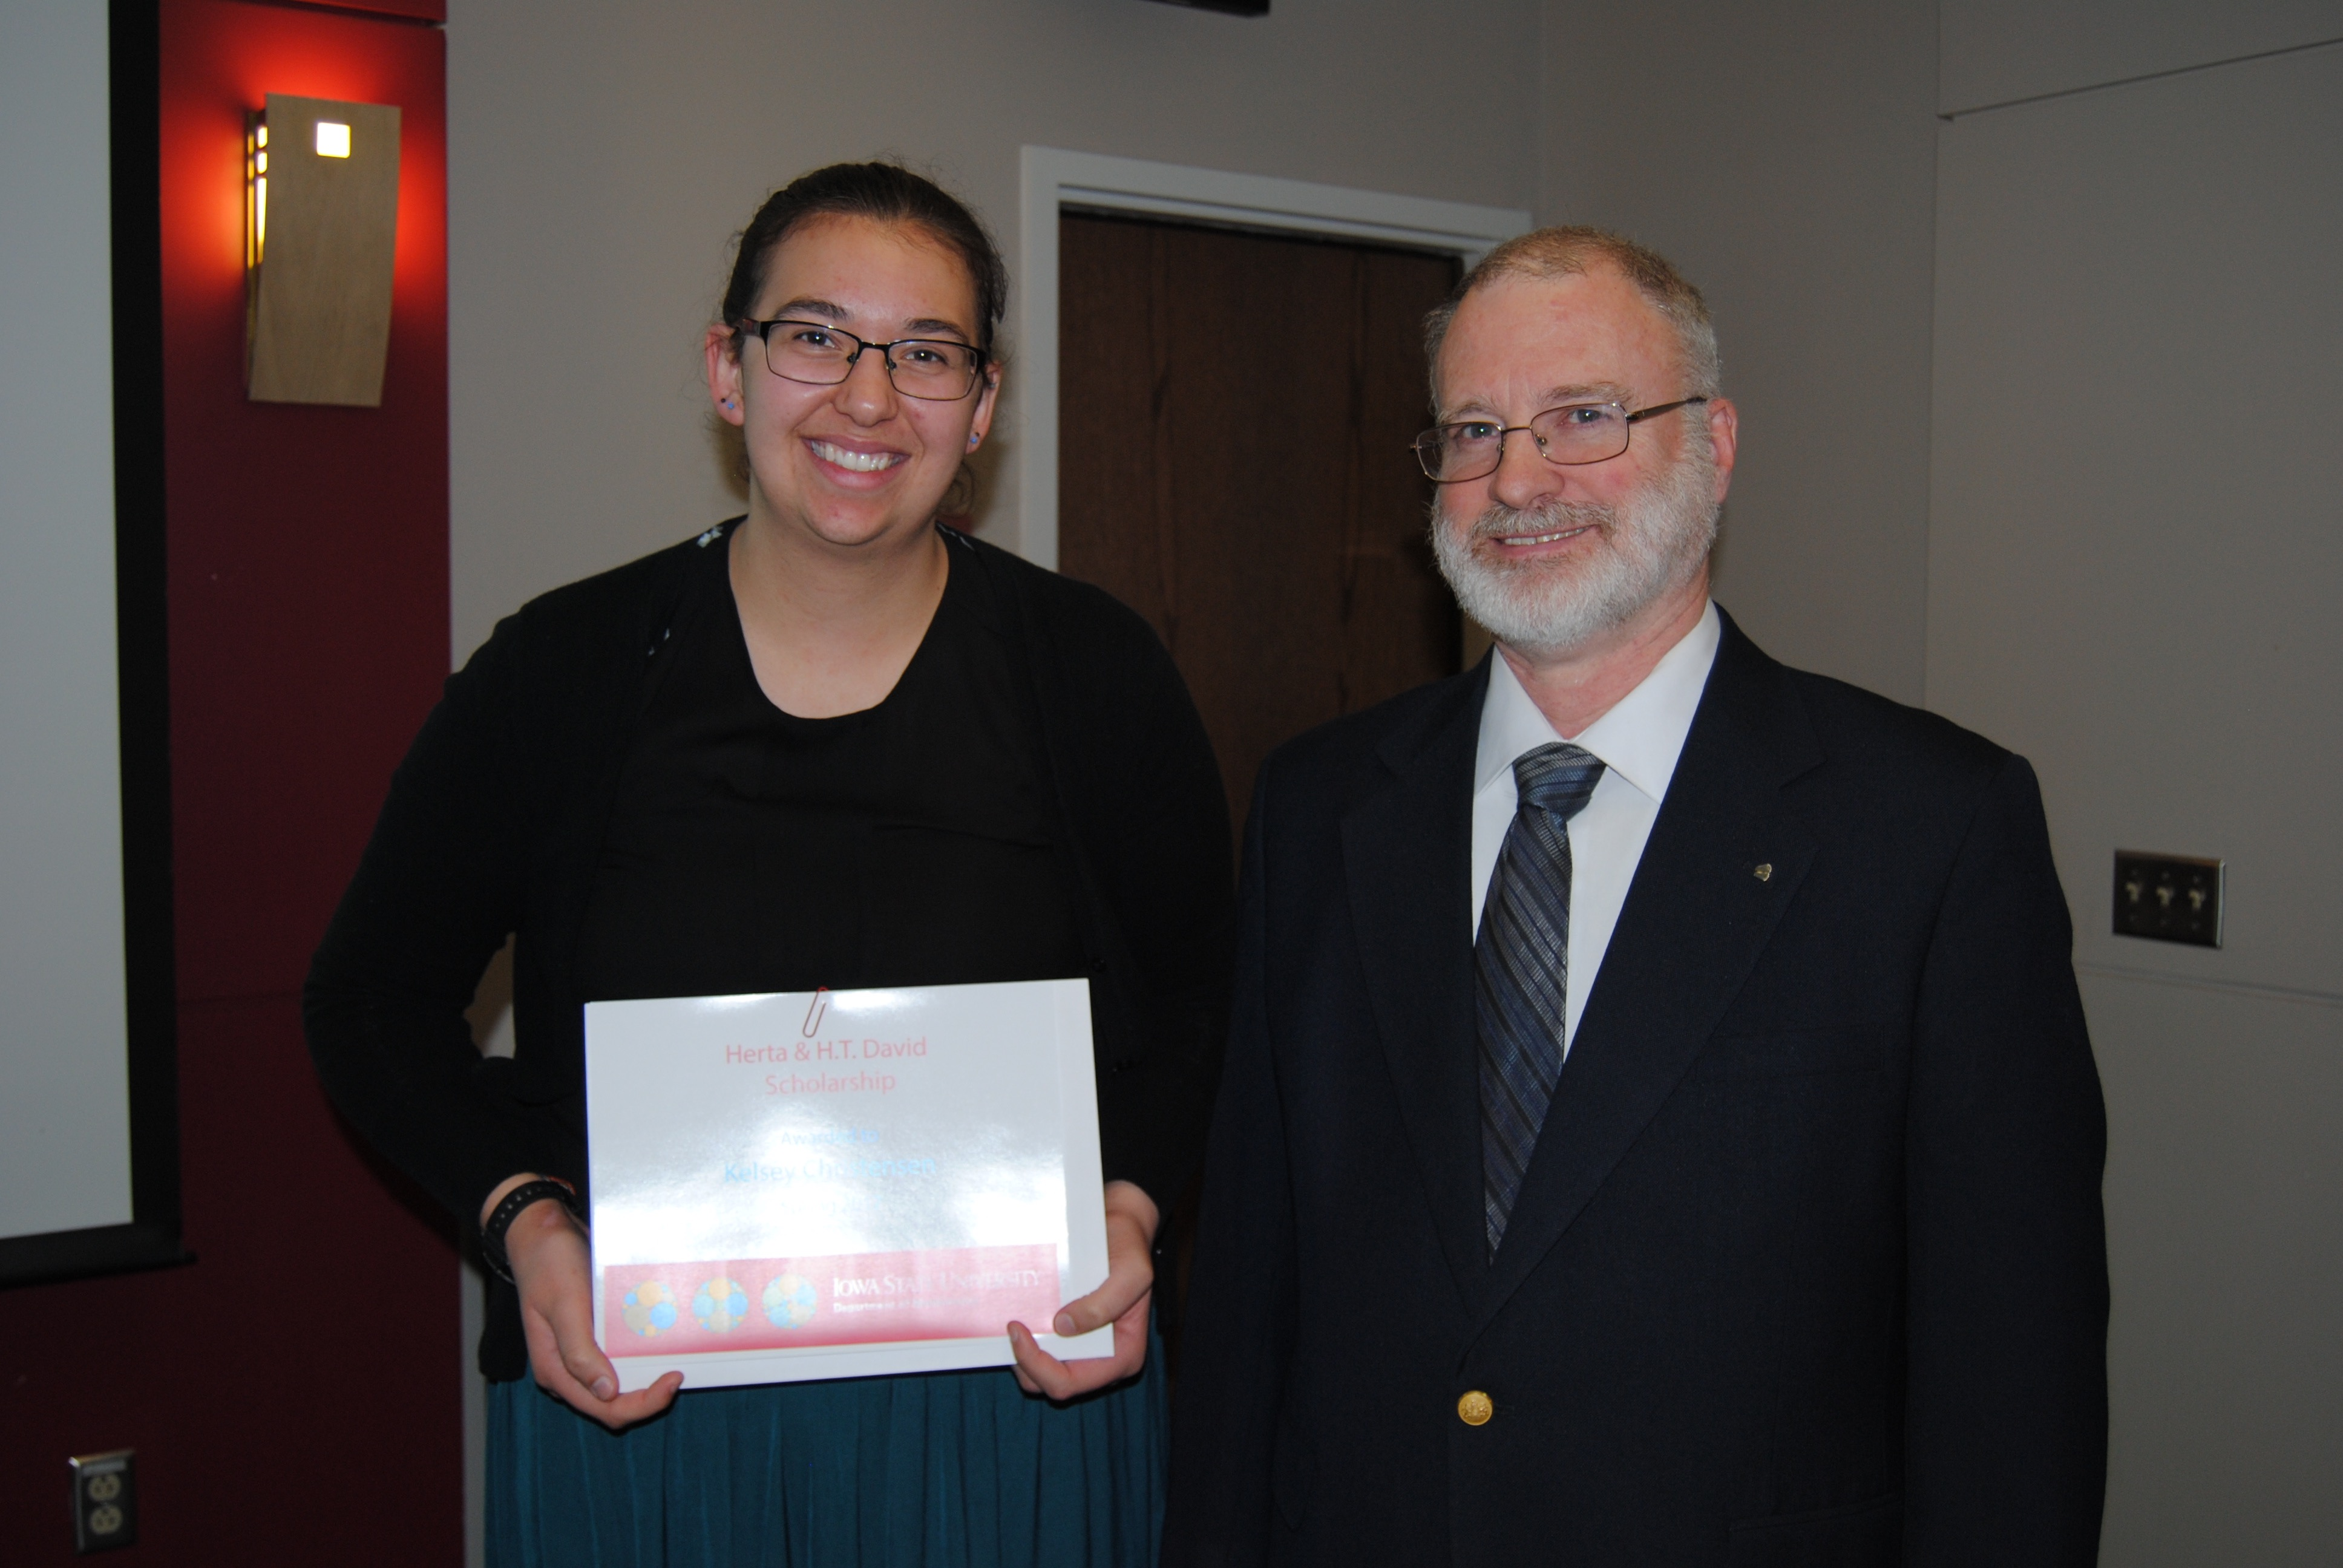 James Wilson, director of undergraduate education, presents Kelsey Christensen with the Herta & H.T. David Scholarship.